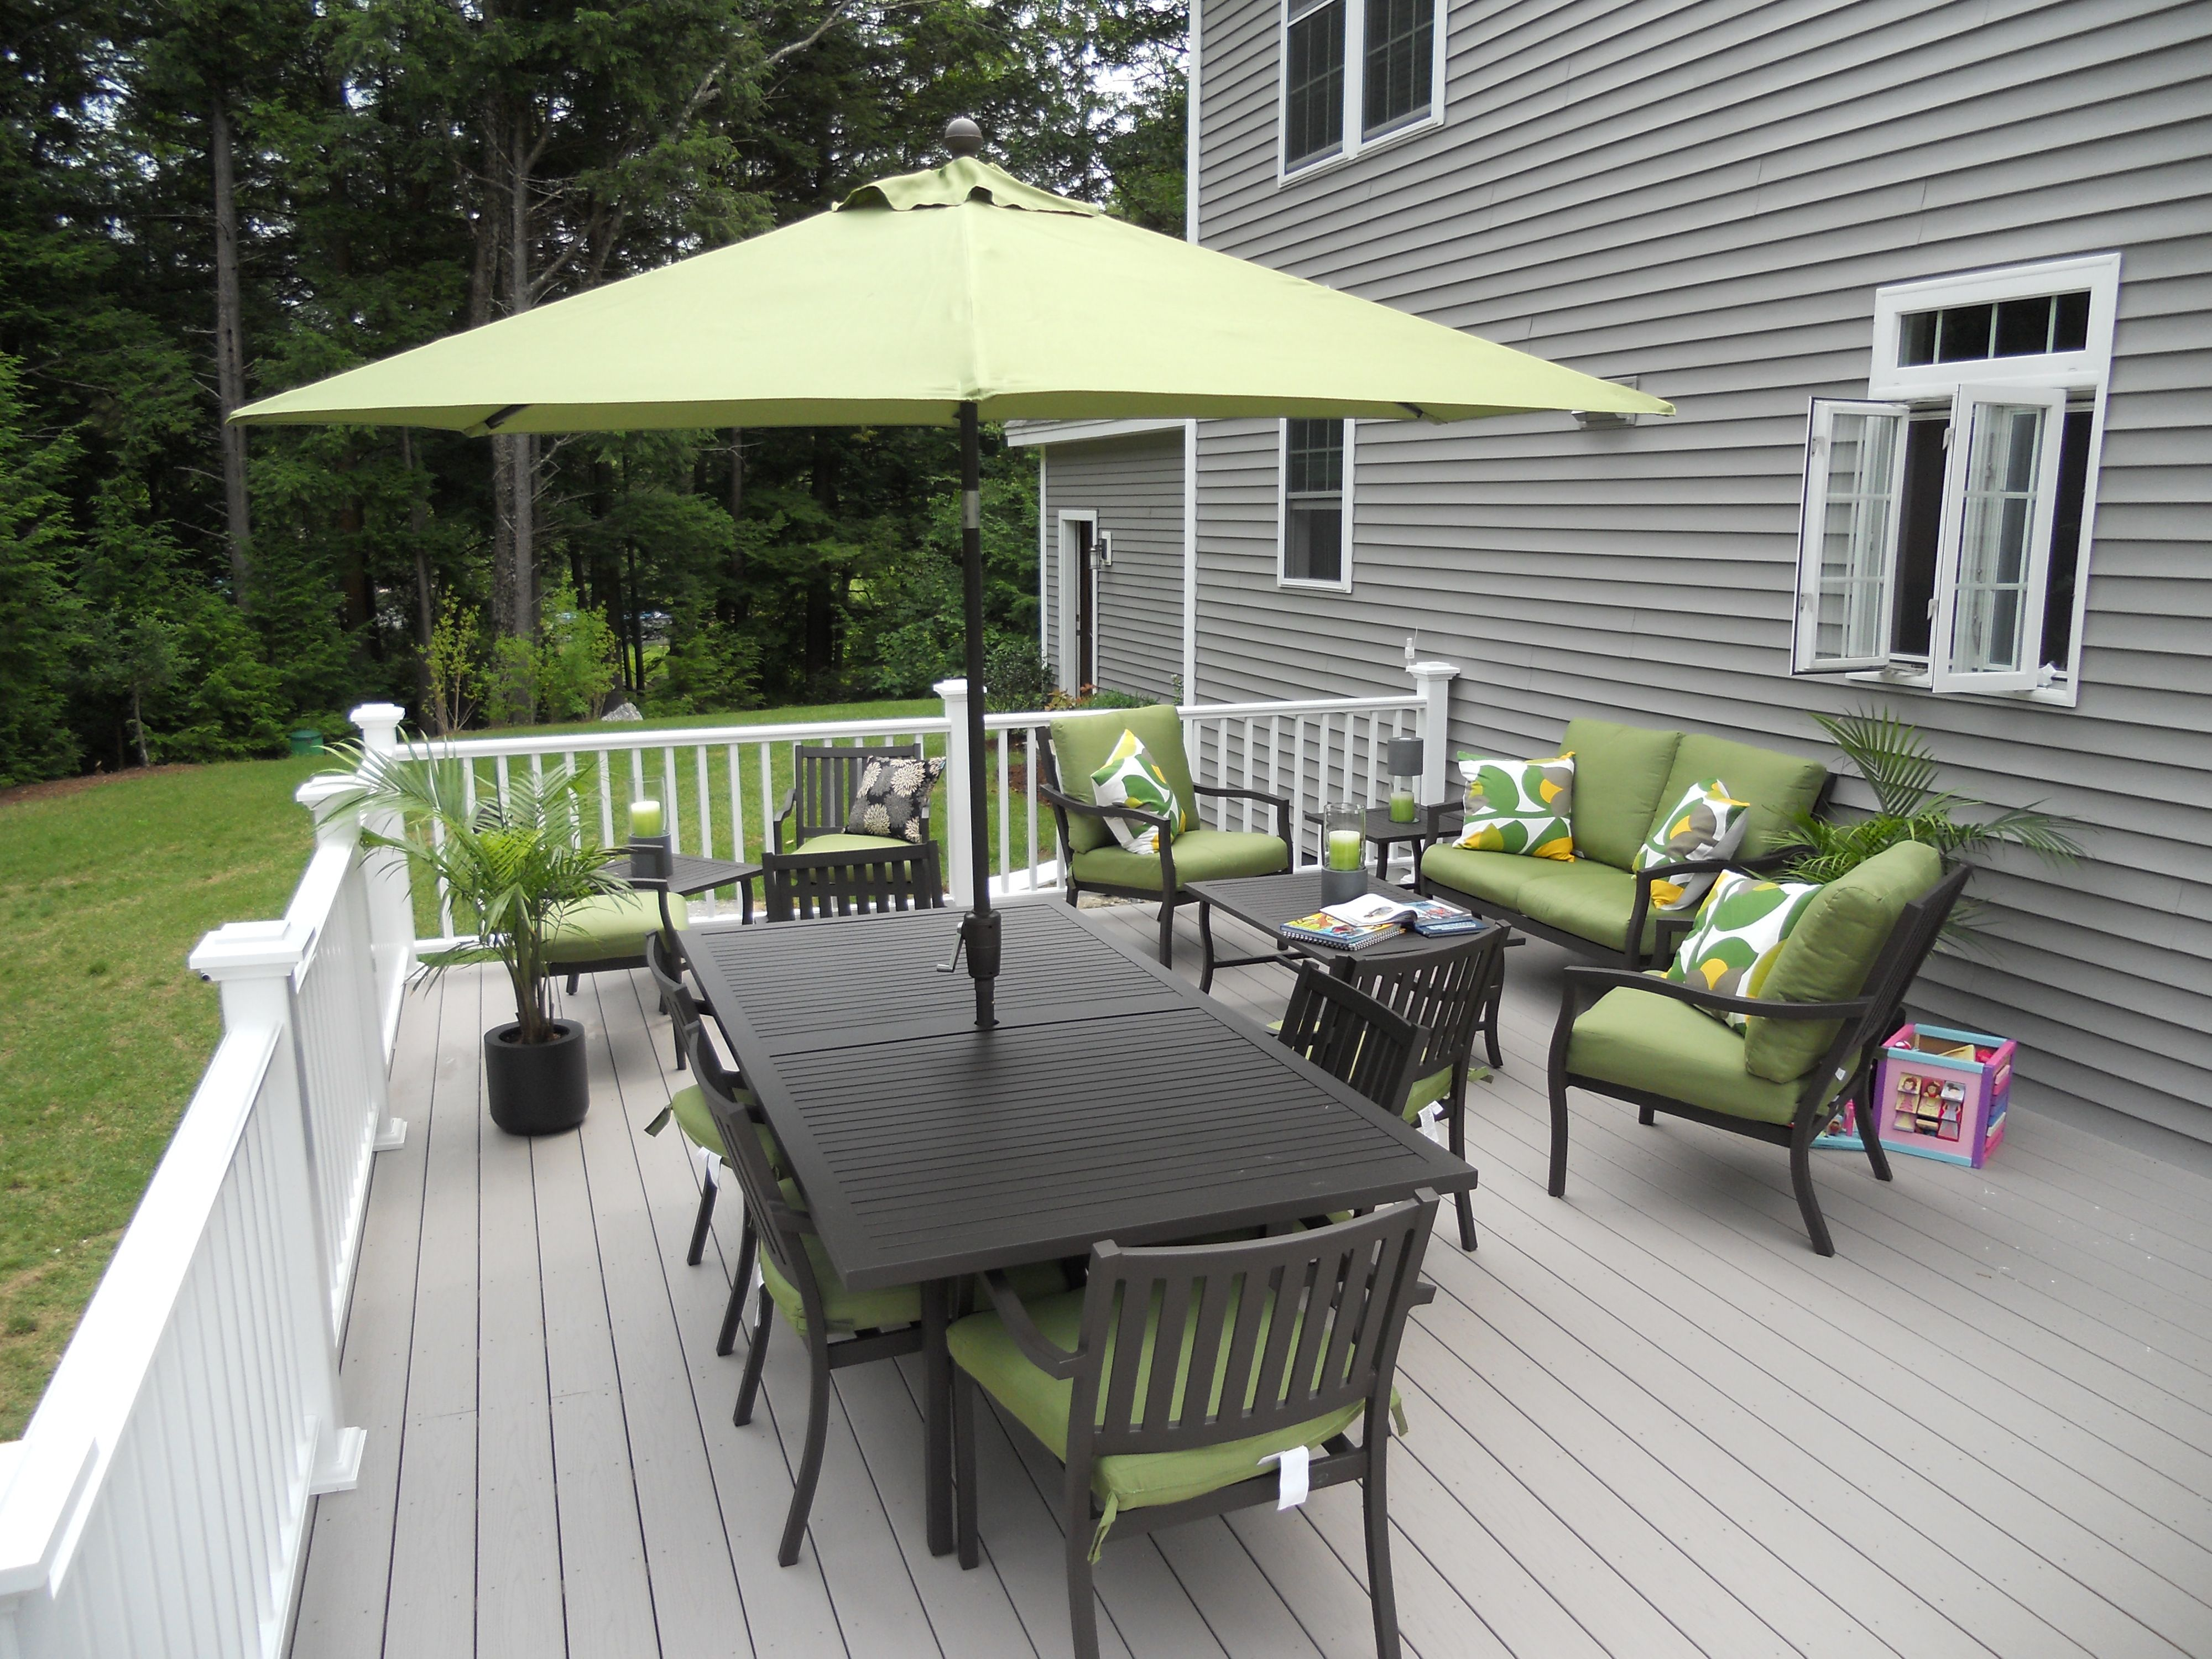 deck decorating ideas | Patio | Pinterest | Deck, White deck and ...